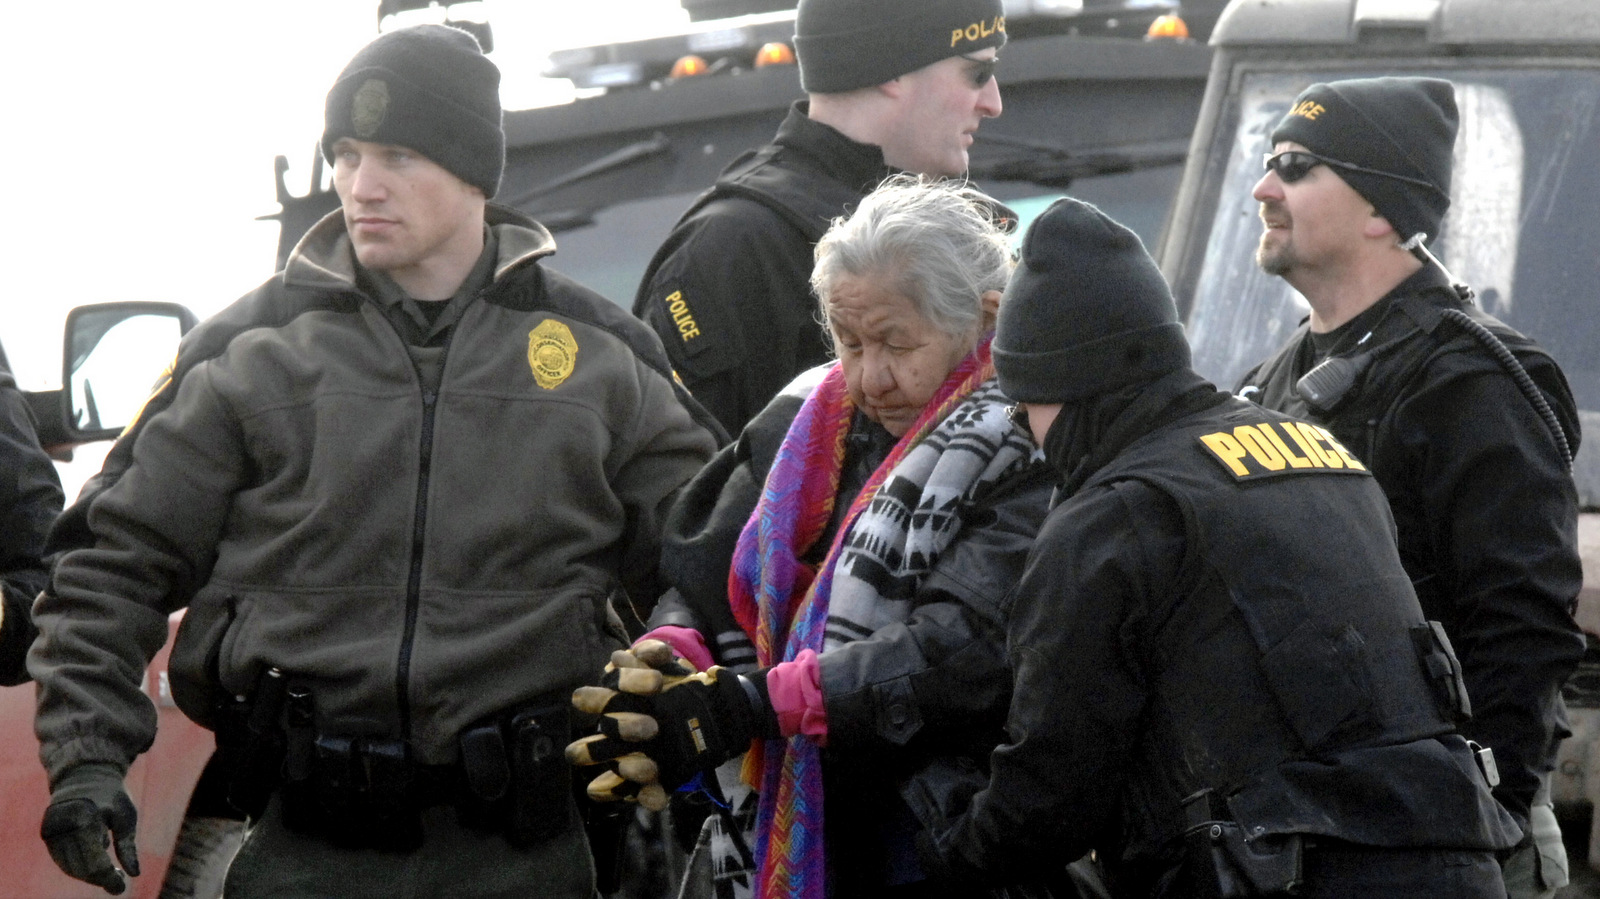 An elderly woman is escorted to a transport van after being arrested by law enforcement at the Oceti Sakowin camp as part of the final sweep of the Dakota Access pipeline protesters in Morton County, Feb. 23, 2017, near Cannon Ball, N.D. (Mike McCleary/The Bismarck Tribune)